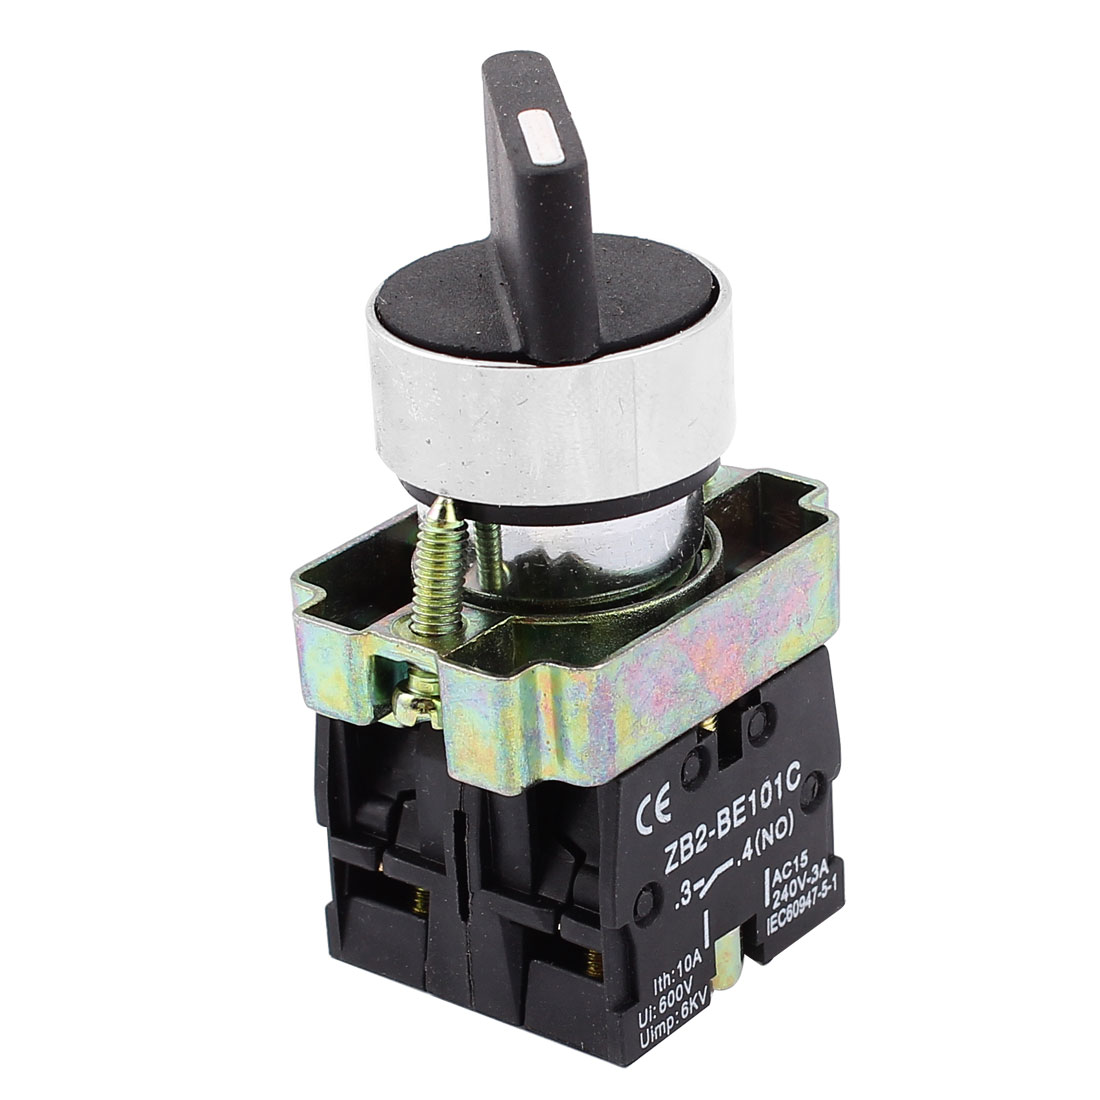 AC-660V-10A-On-Off-On-Self-Lock-3-Postion-Rotary-Selector-Switch-22mm-ZB2-BE101C